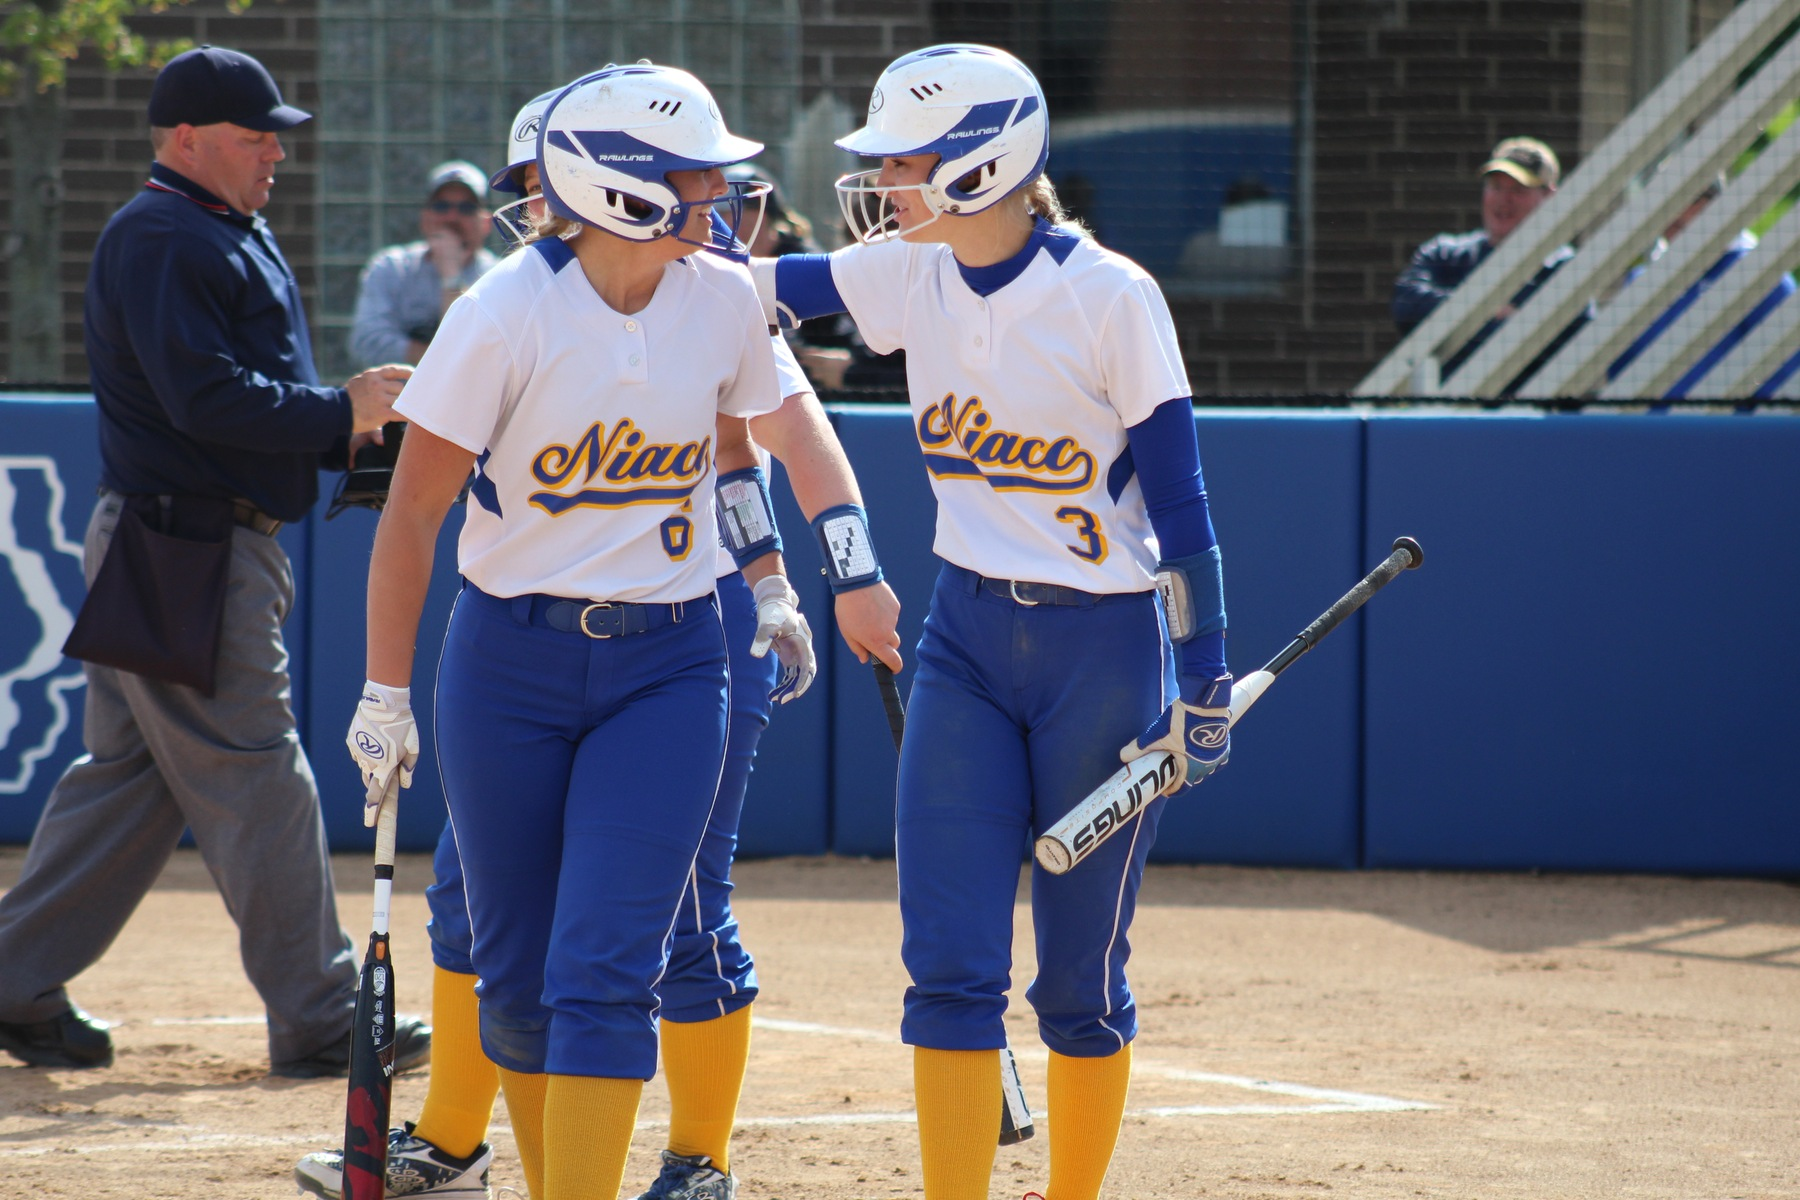 Morgan Kelley (left) gets congratulated by Hannah Faktor after hitting a solo home run in the fourth inning.